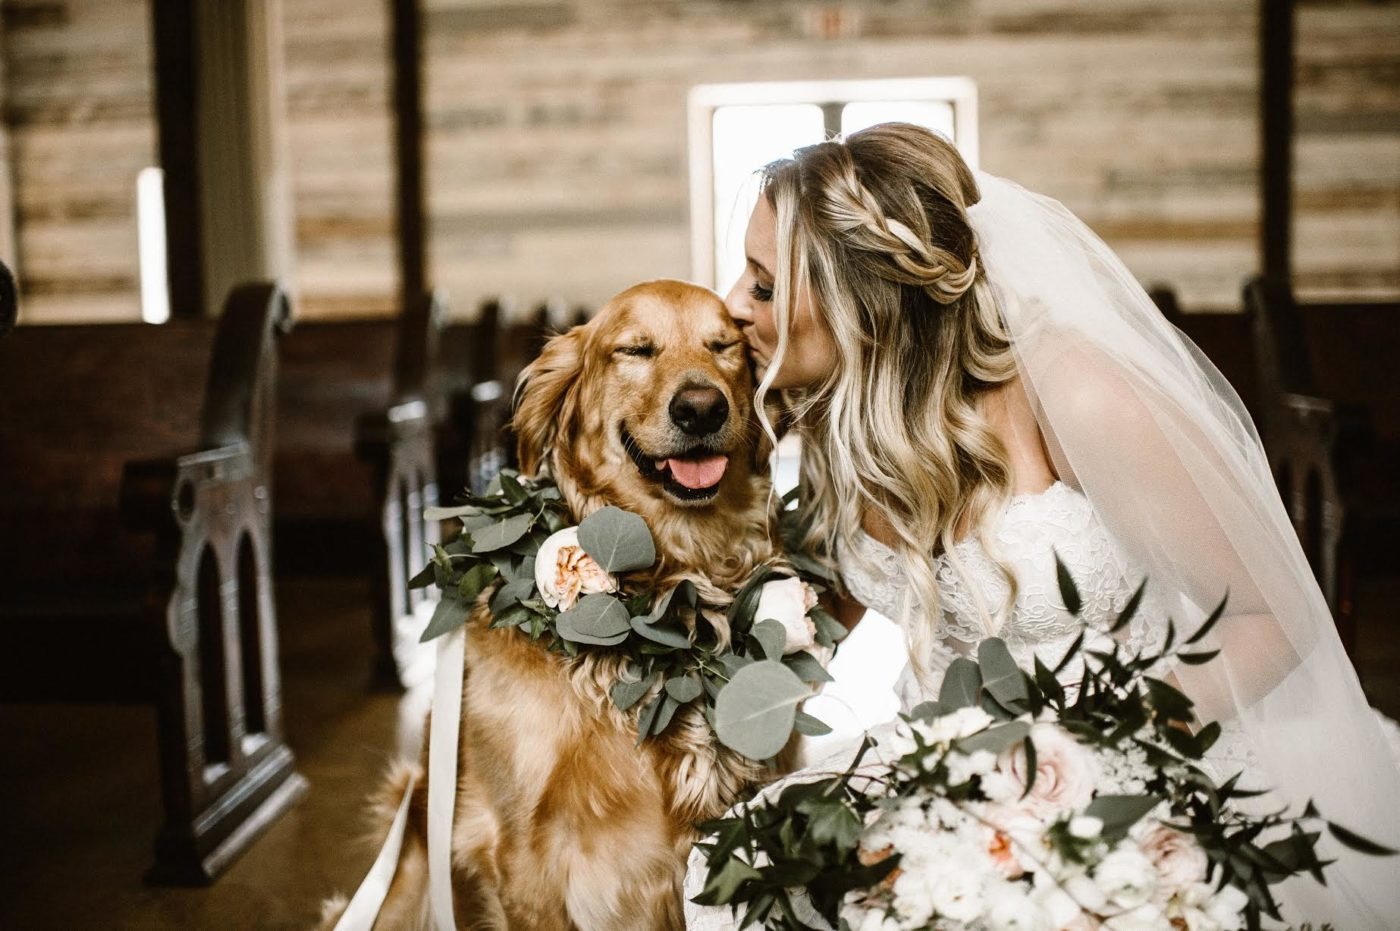 Dog, golden retriever, guest of honor or dog of honor, attending the wedding of his mama, chaperoned by Dog Nanny Riviera.